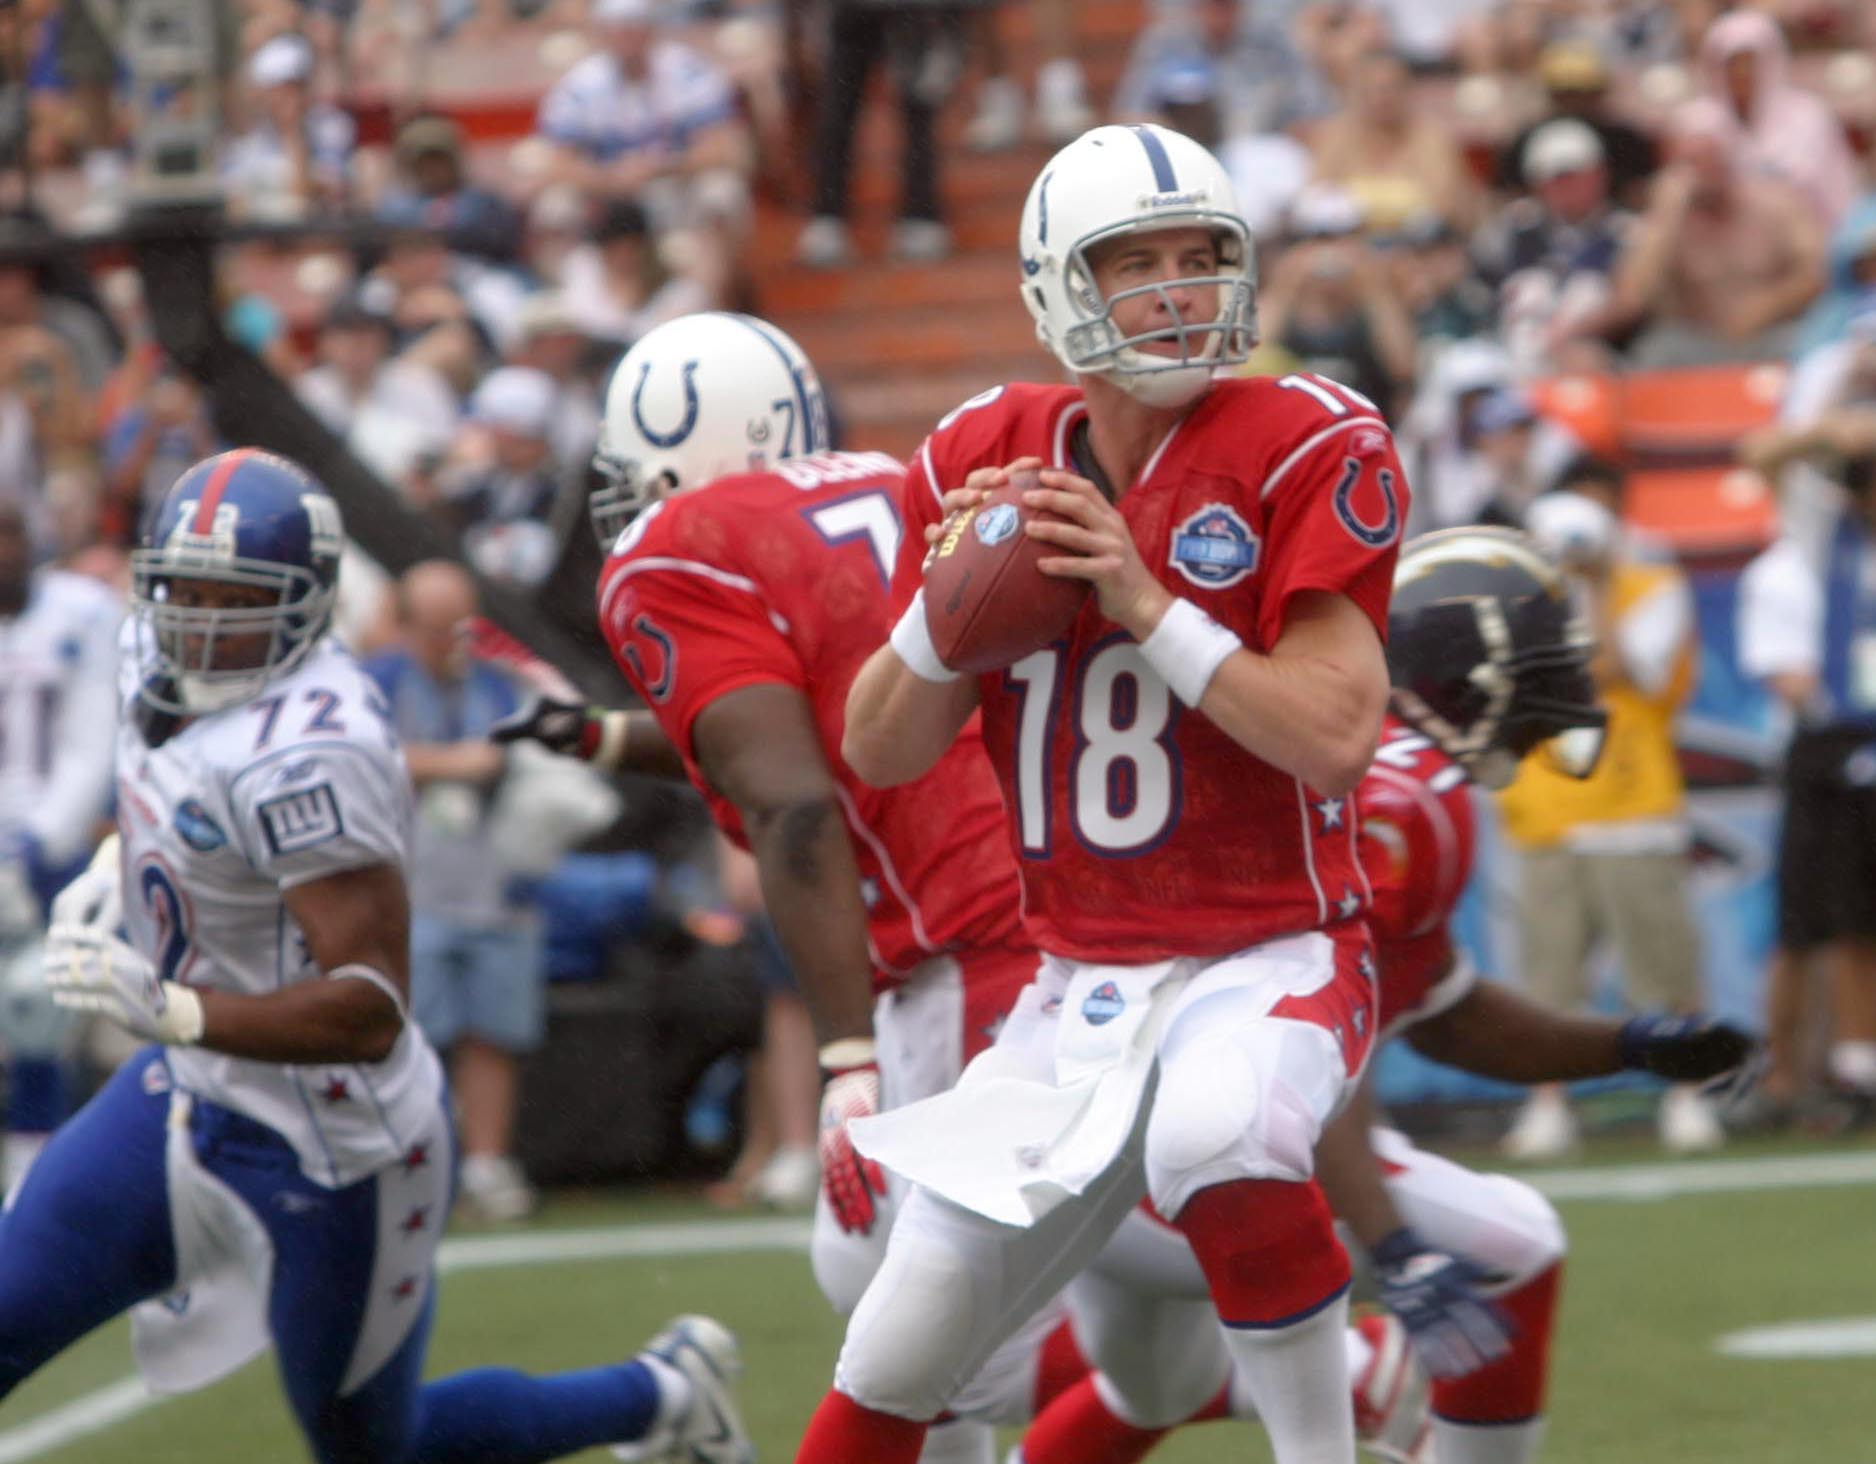 Peyton Manning playing for the Indianapolis Colts at the 2006 Pro Bowl